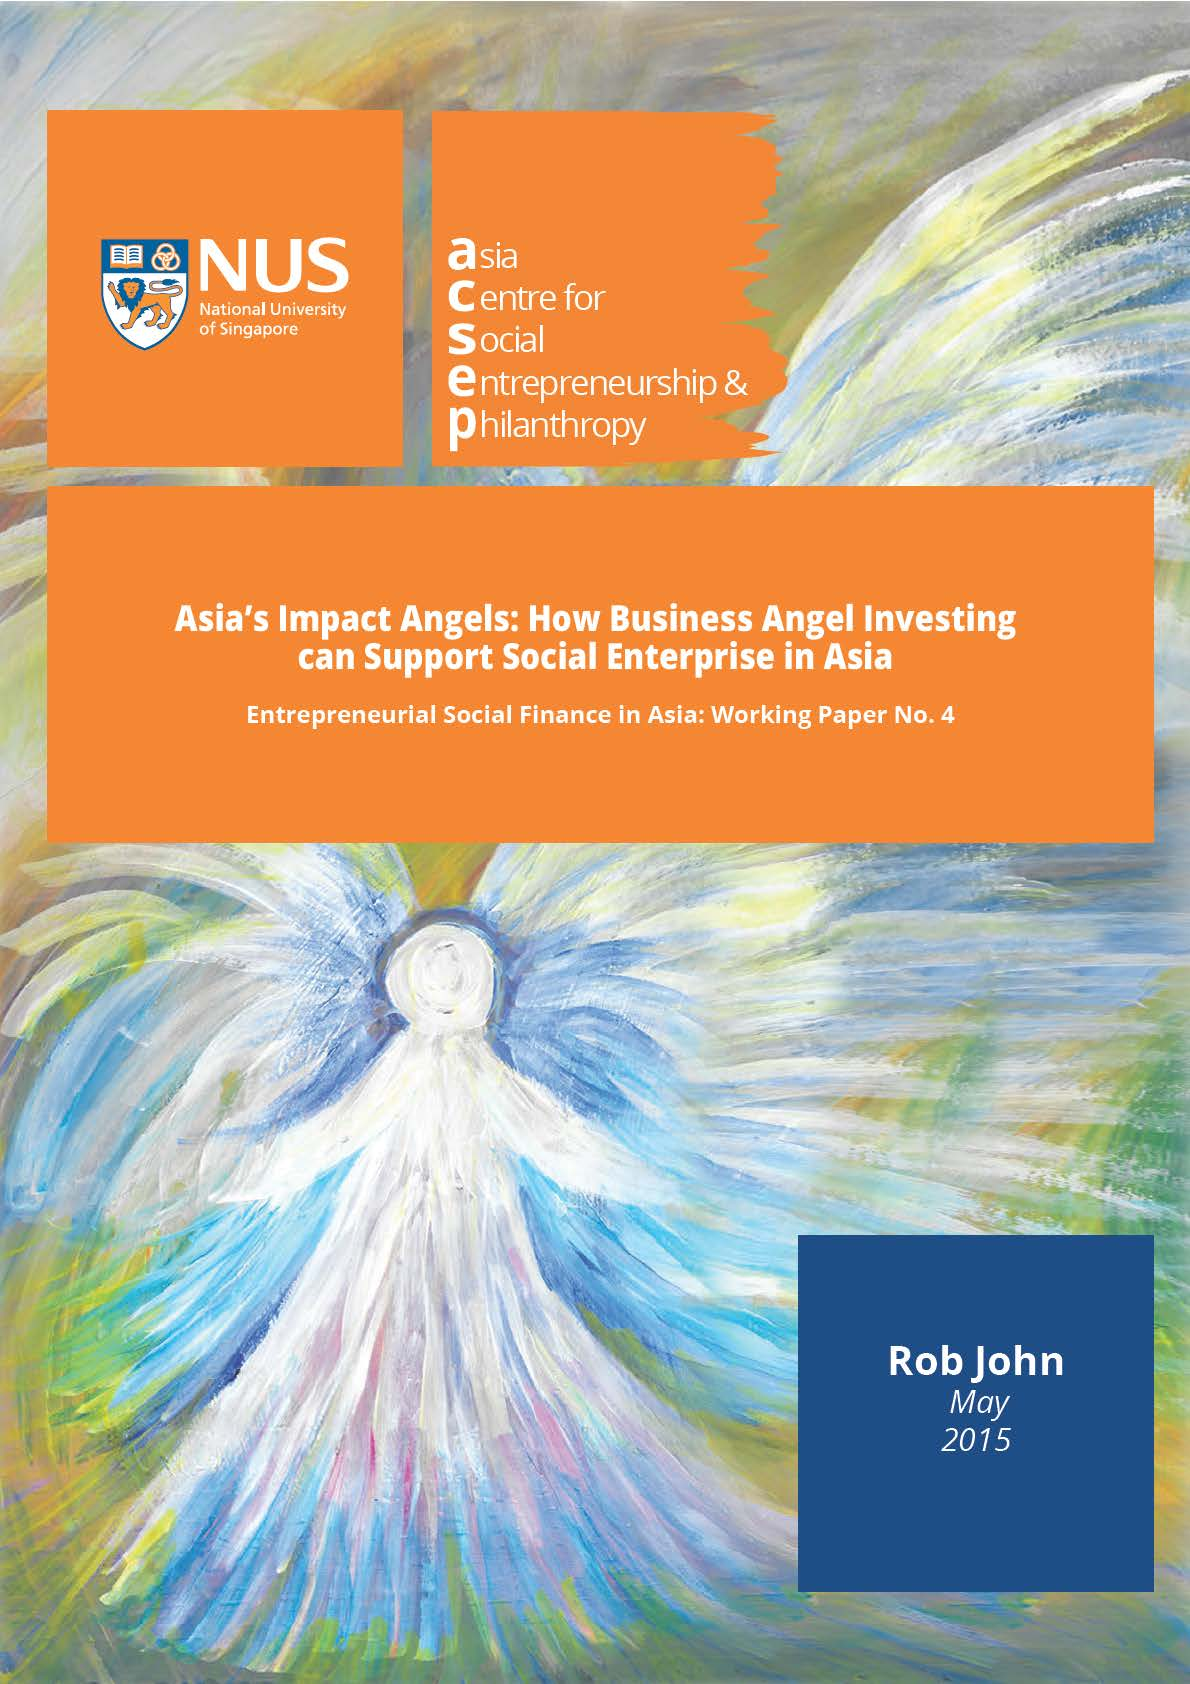 Asia's Impact Angels: How Business Angel Investing can Support Social Enterprise in Asia